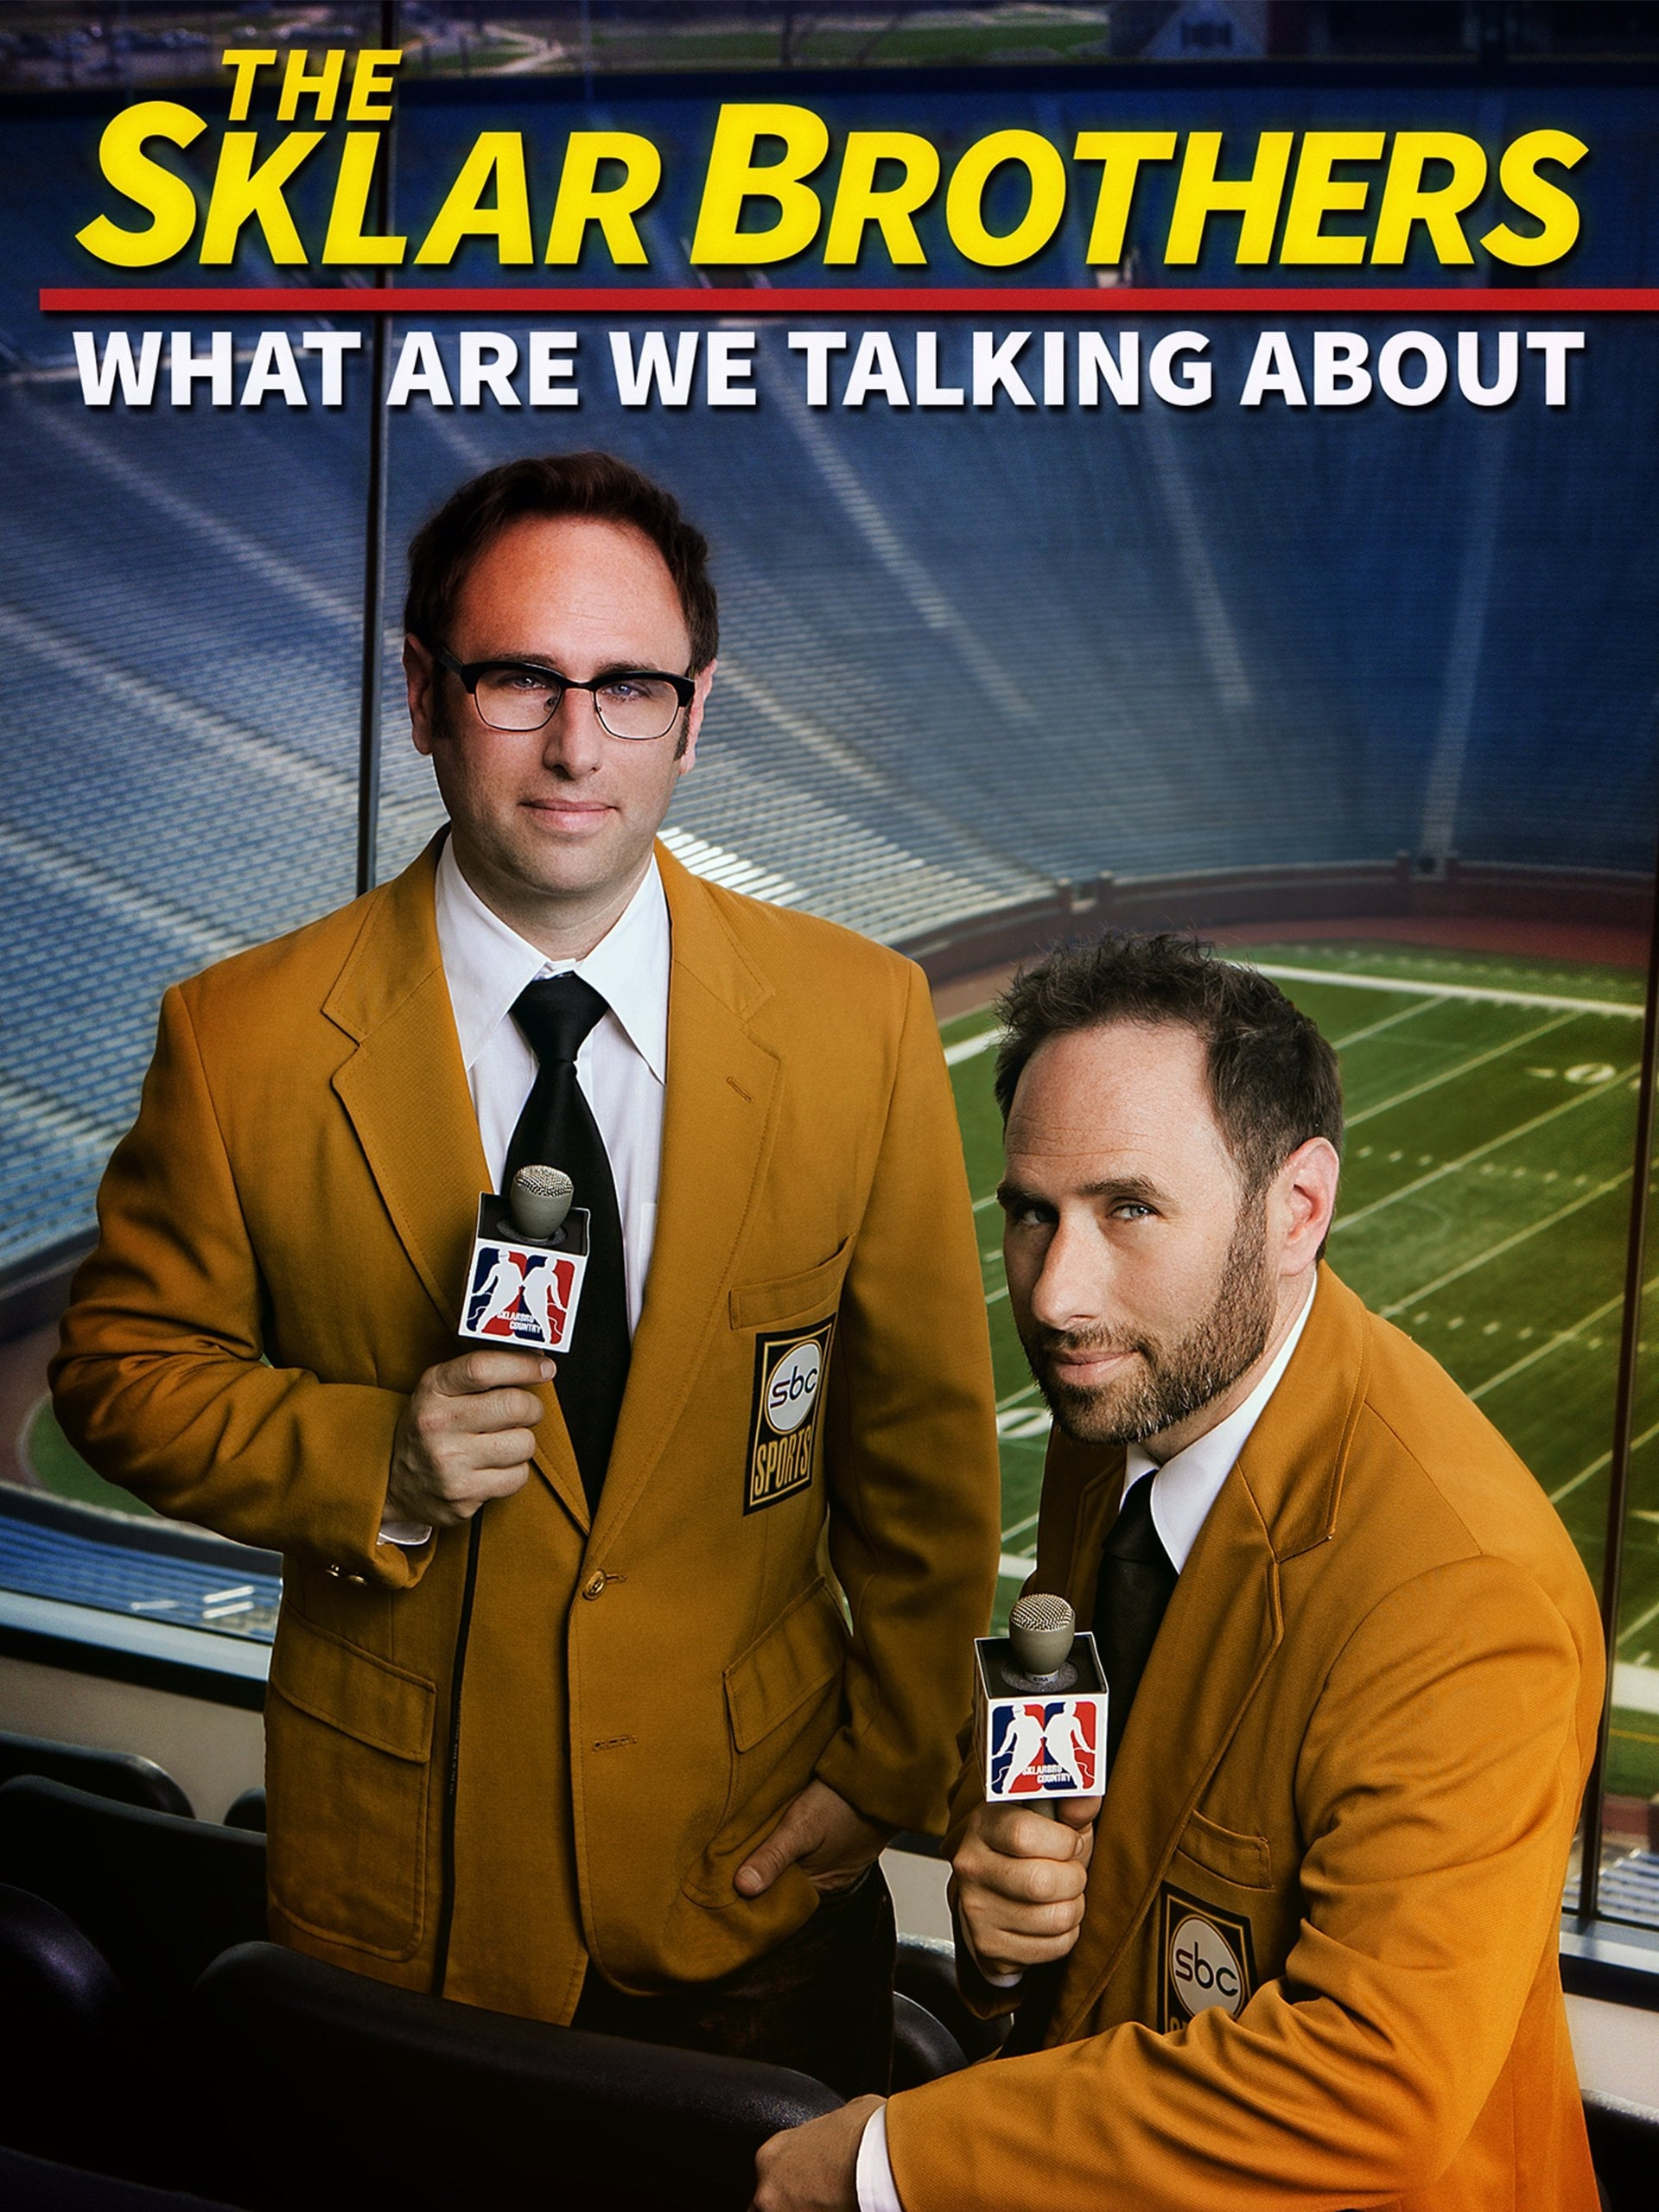 The Sklar Brothers: What Are We Talking About on FREECABLE TV